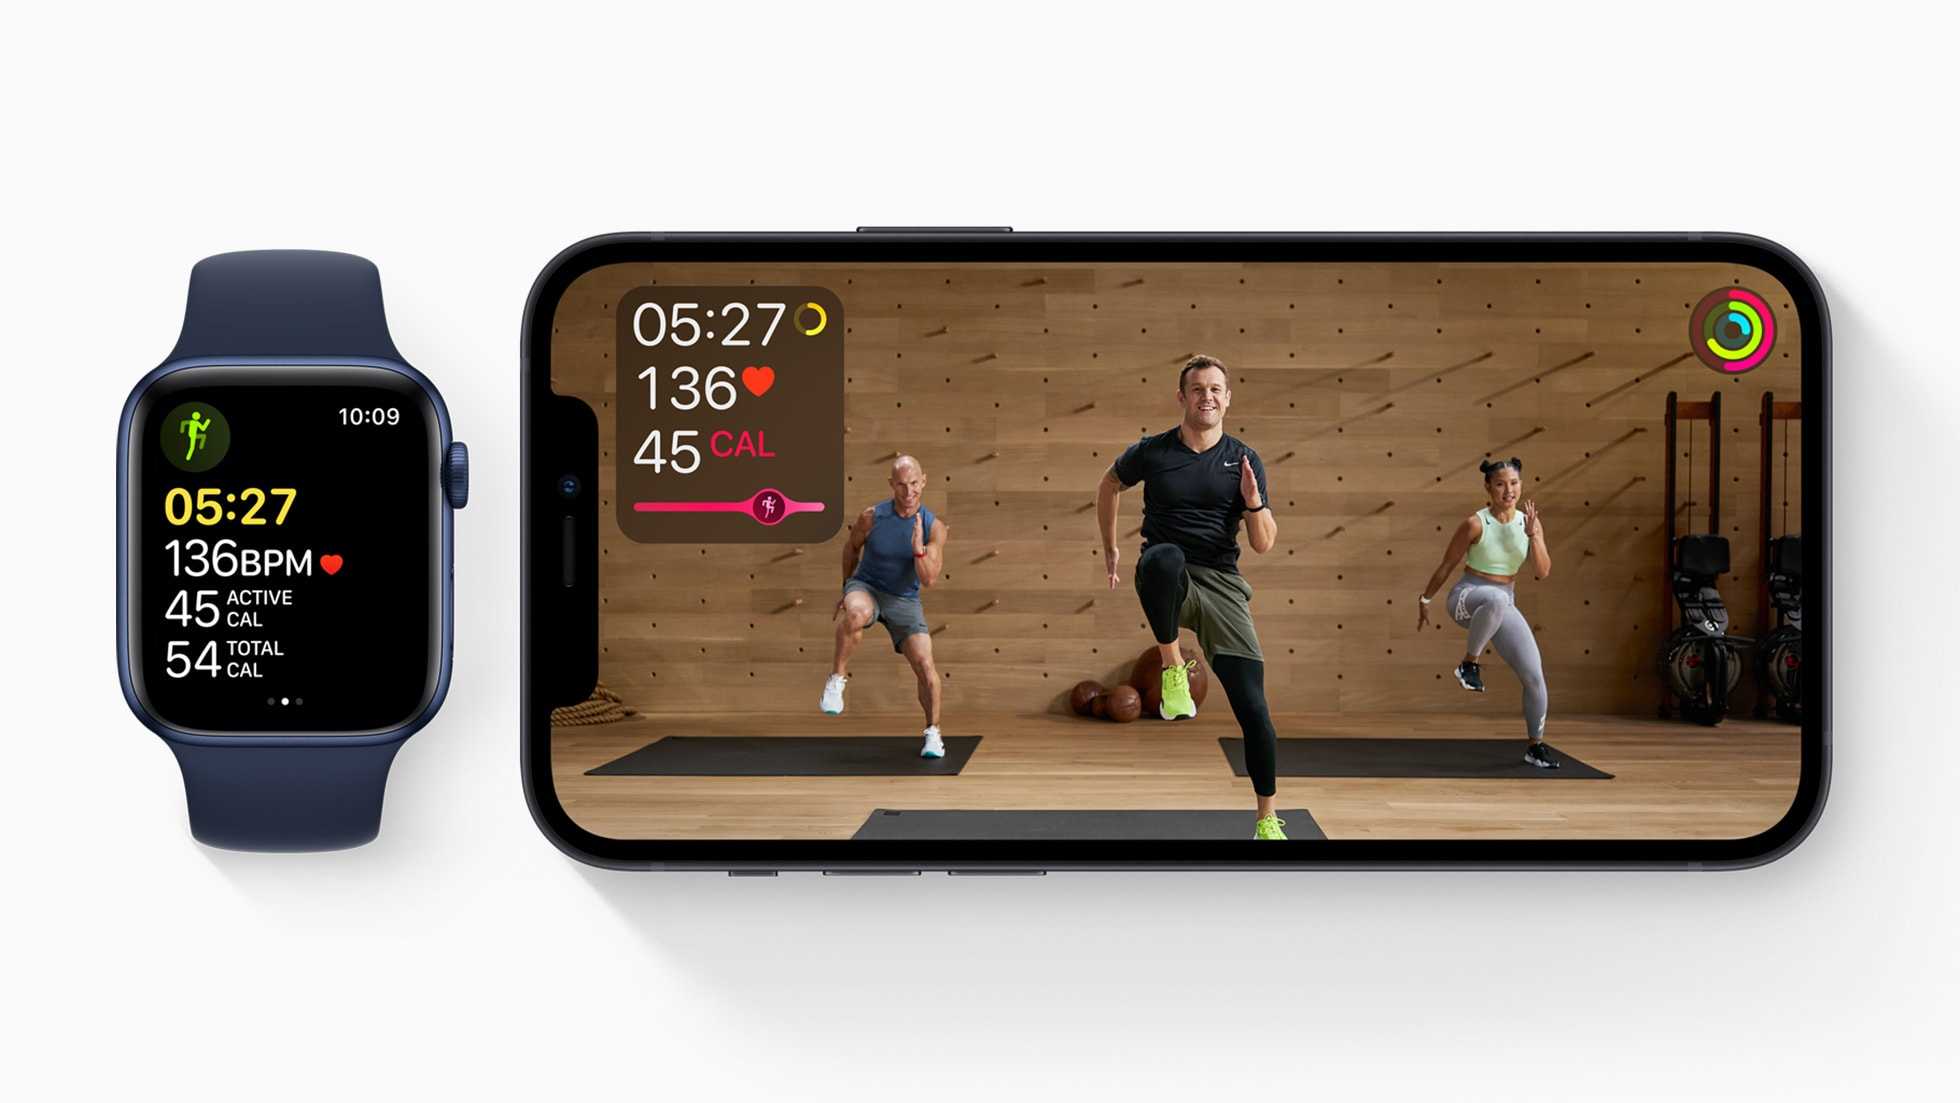 Apple Fitness+ review: Apple Watch integration gives the new subscription service a crucial advantage. But is your iPhone really big enough for workouts?